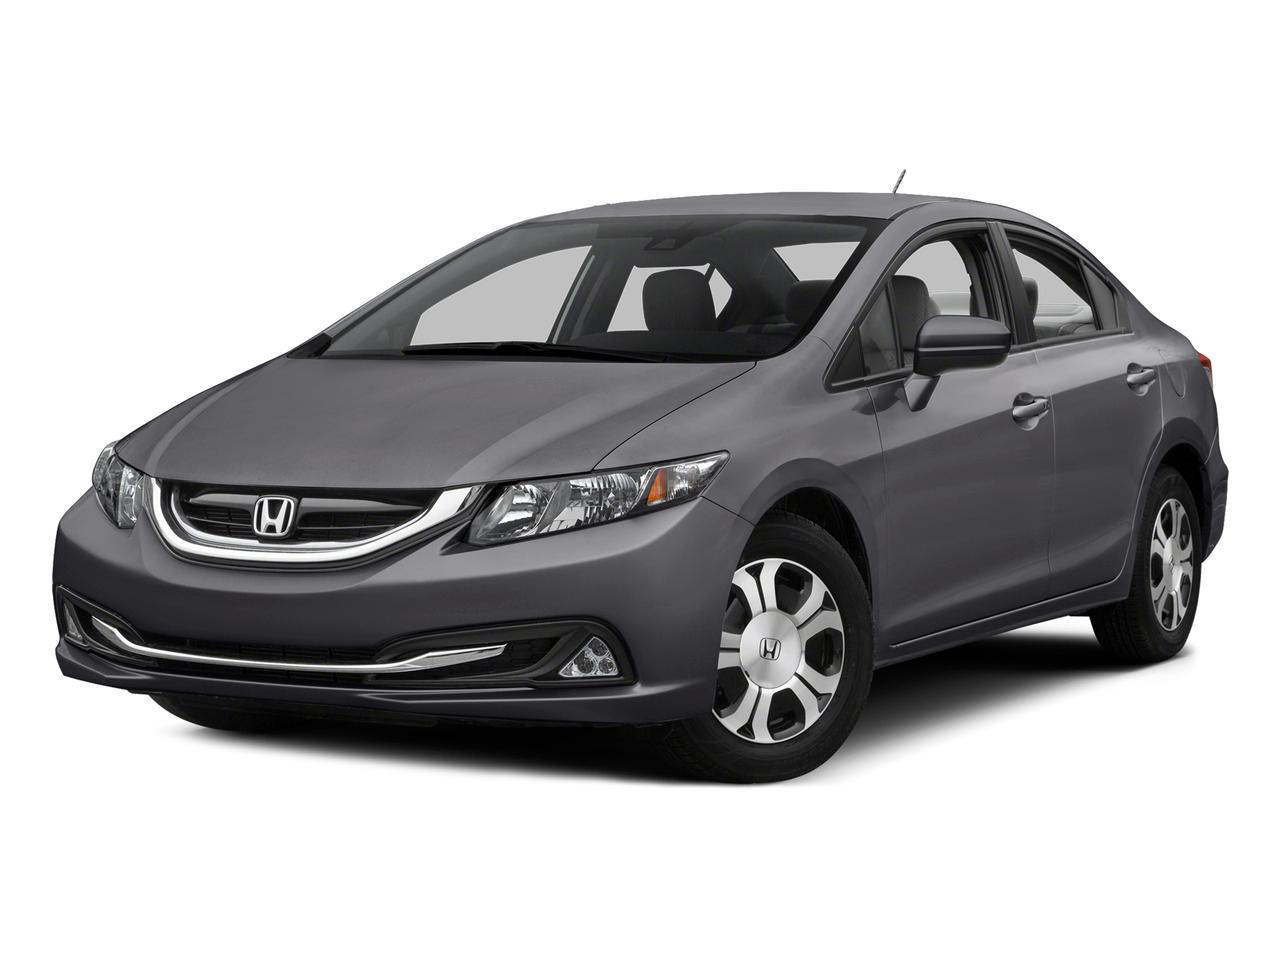 2015 Honda Civic Hybrid Vehicle Photo in Colma, CA 94014